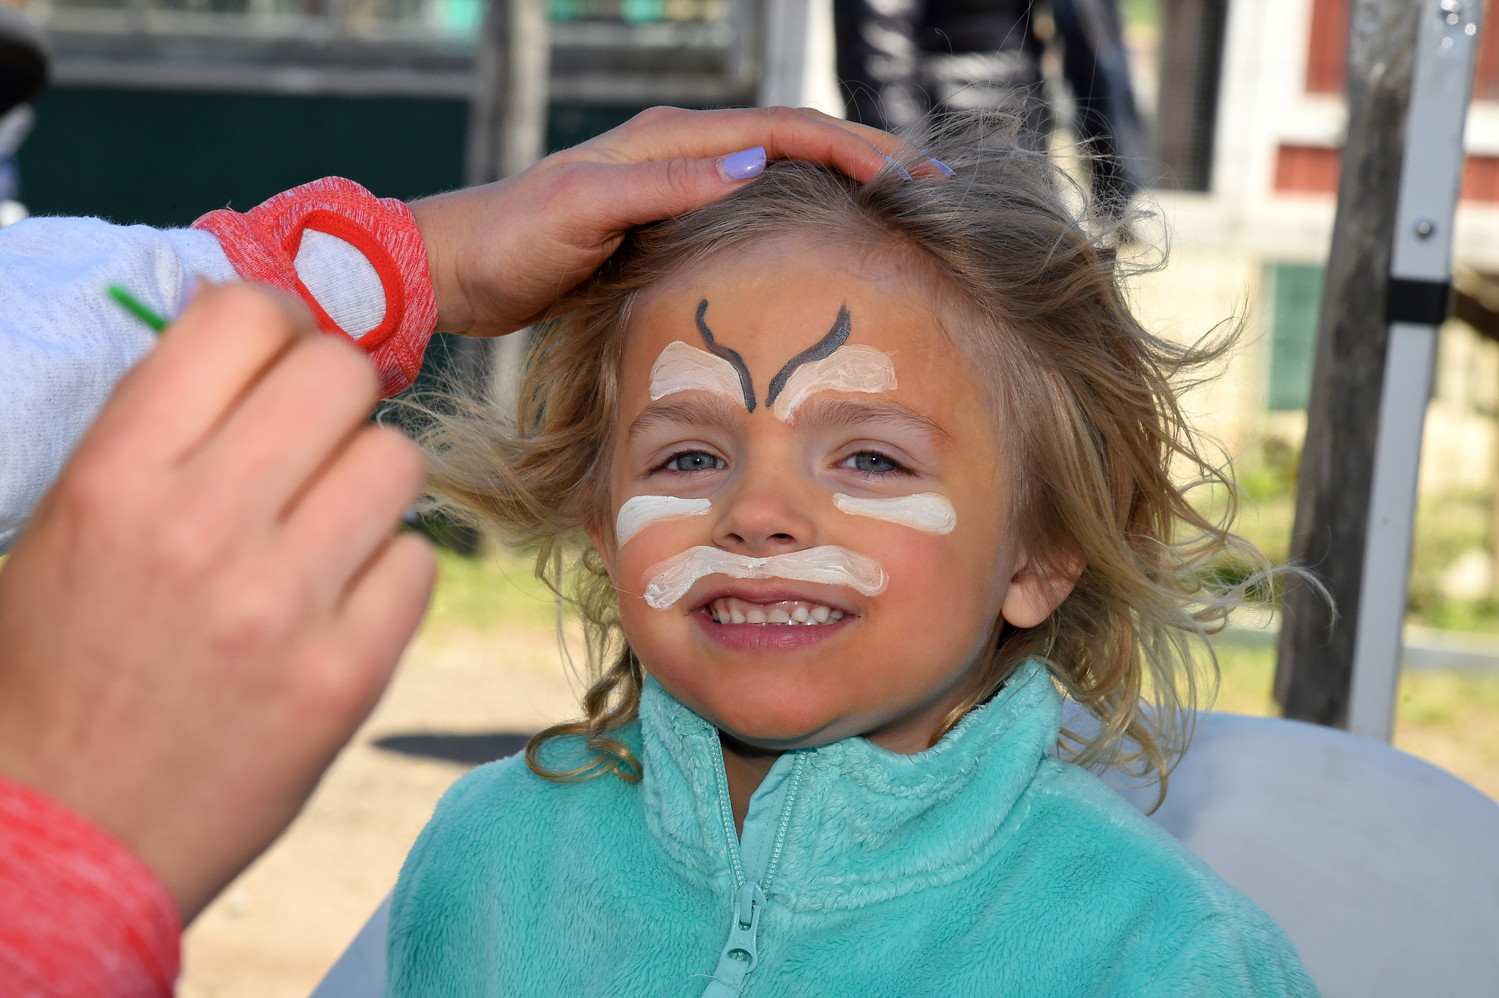 Senja Bullock, 5, was excited to get her face painted.